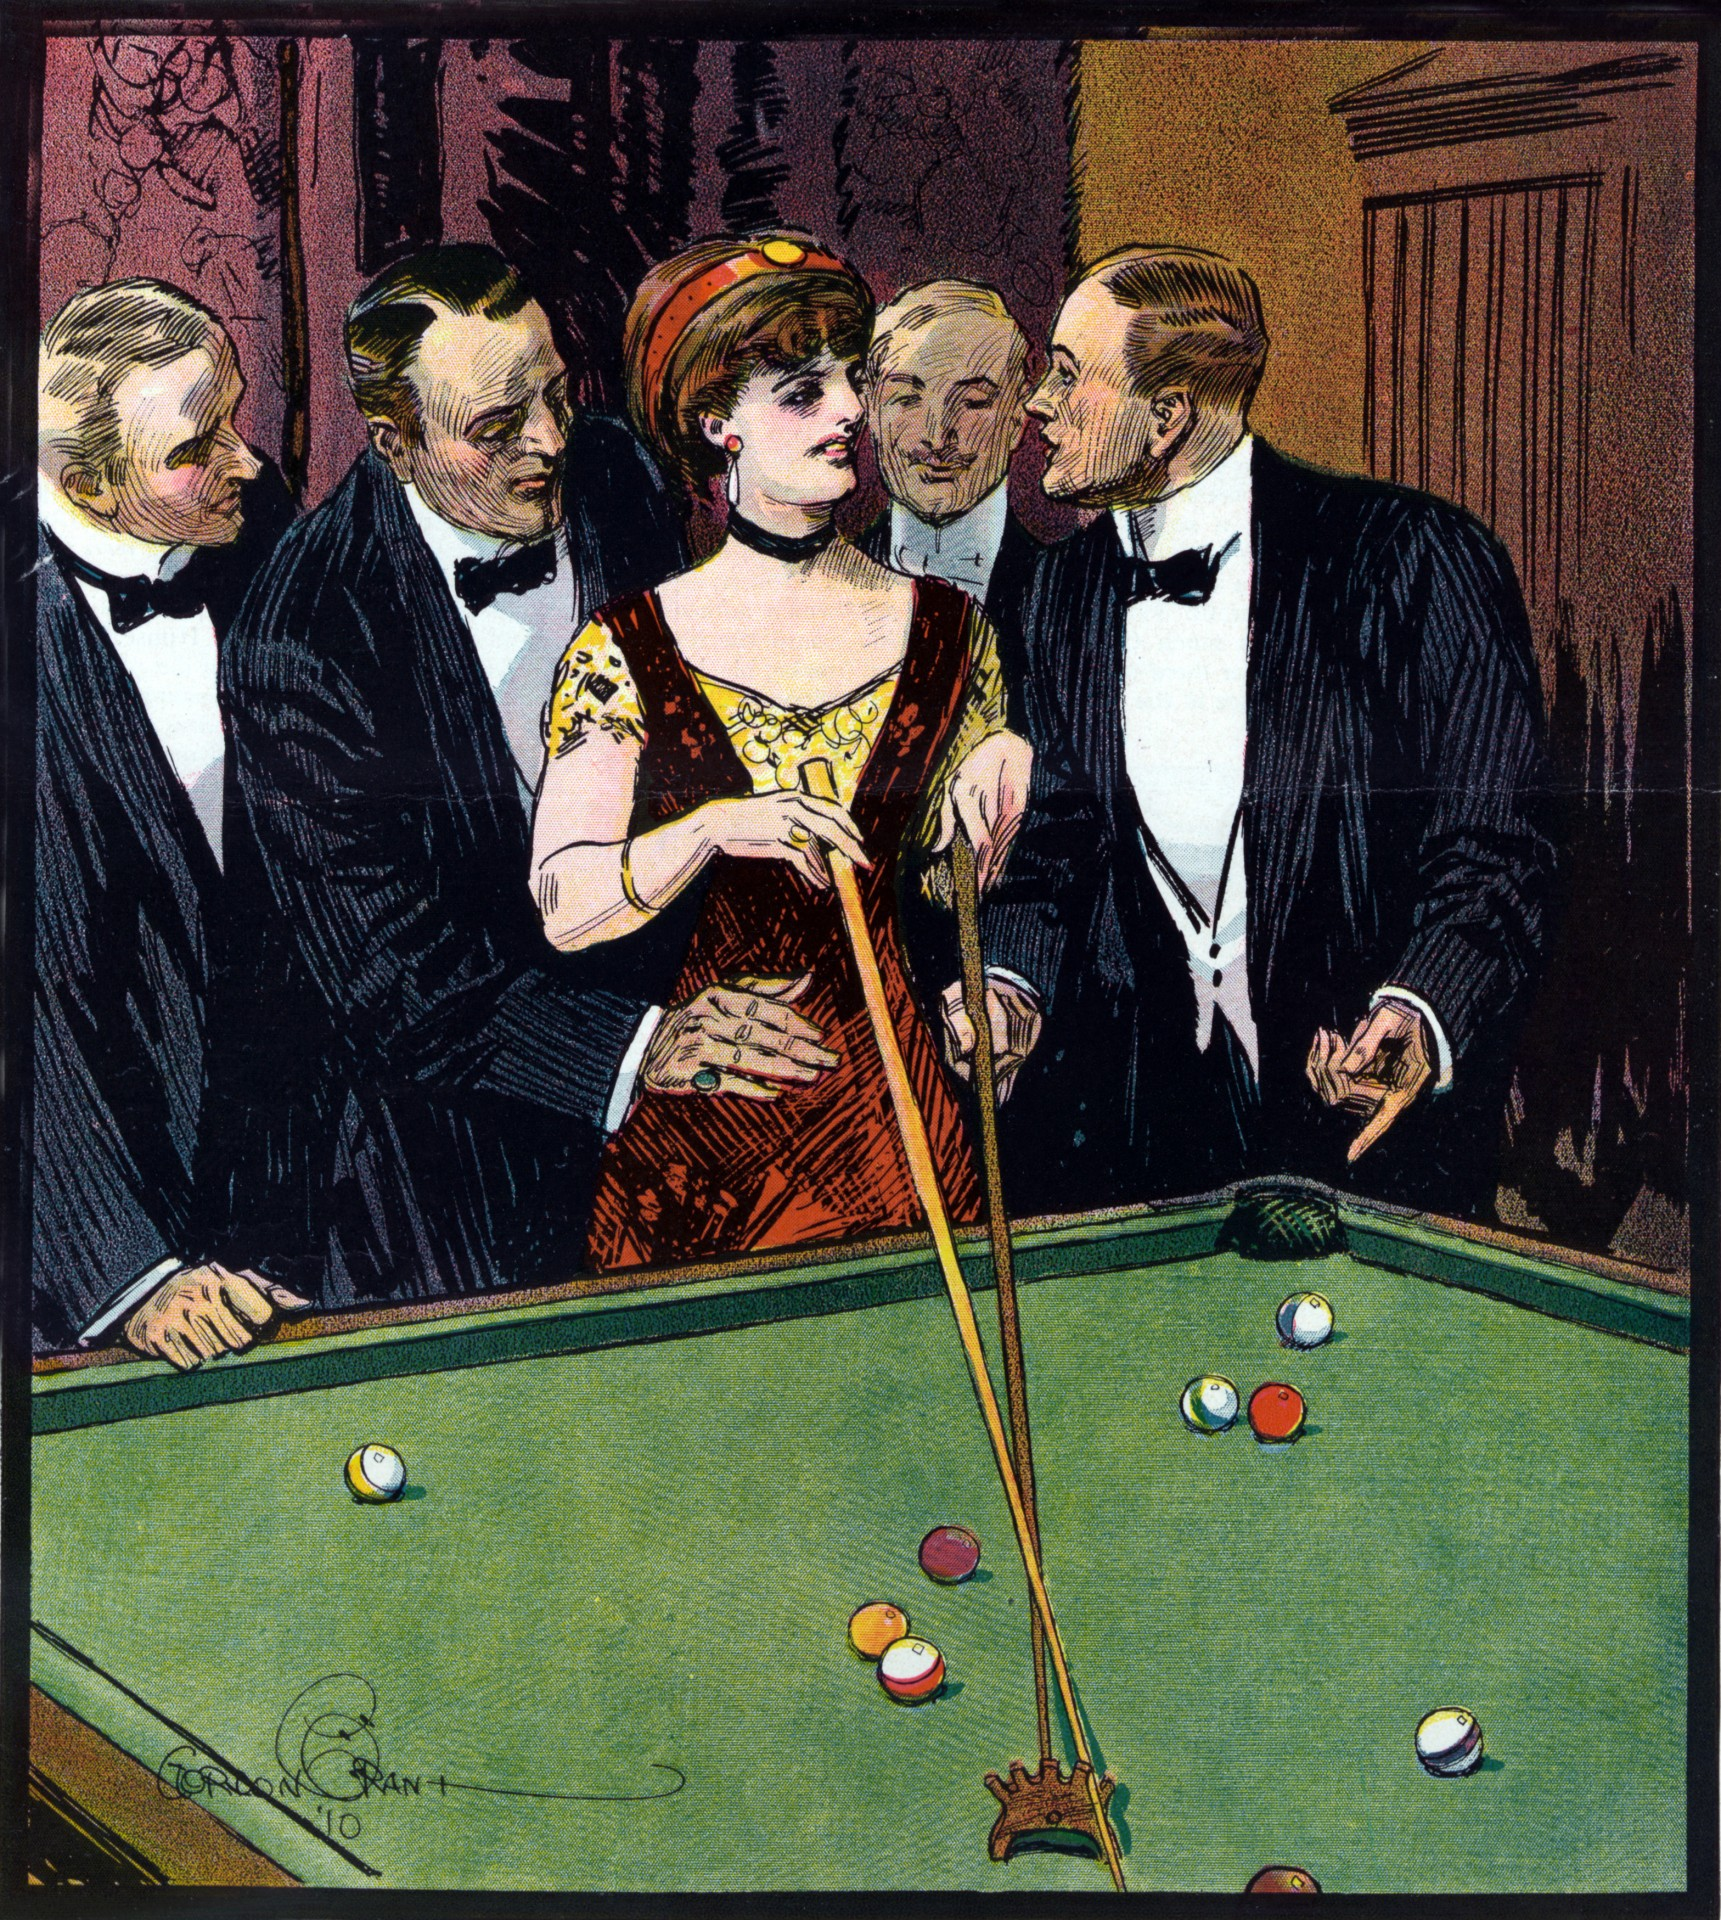 Beautiful Girl Wallpapers Free Playing Pool Vintage Poster Free Stock Photo Public